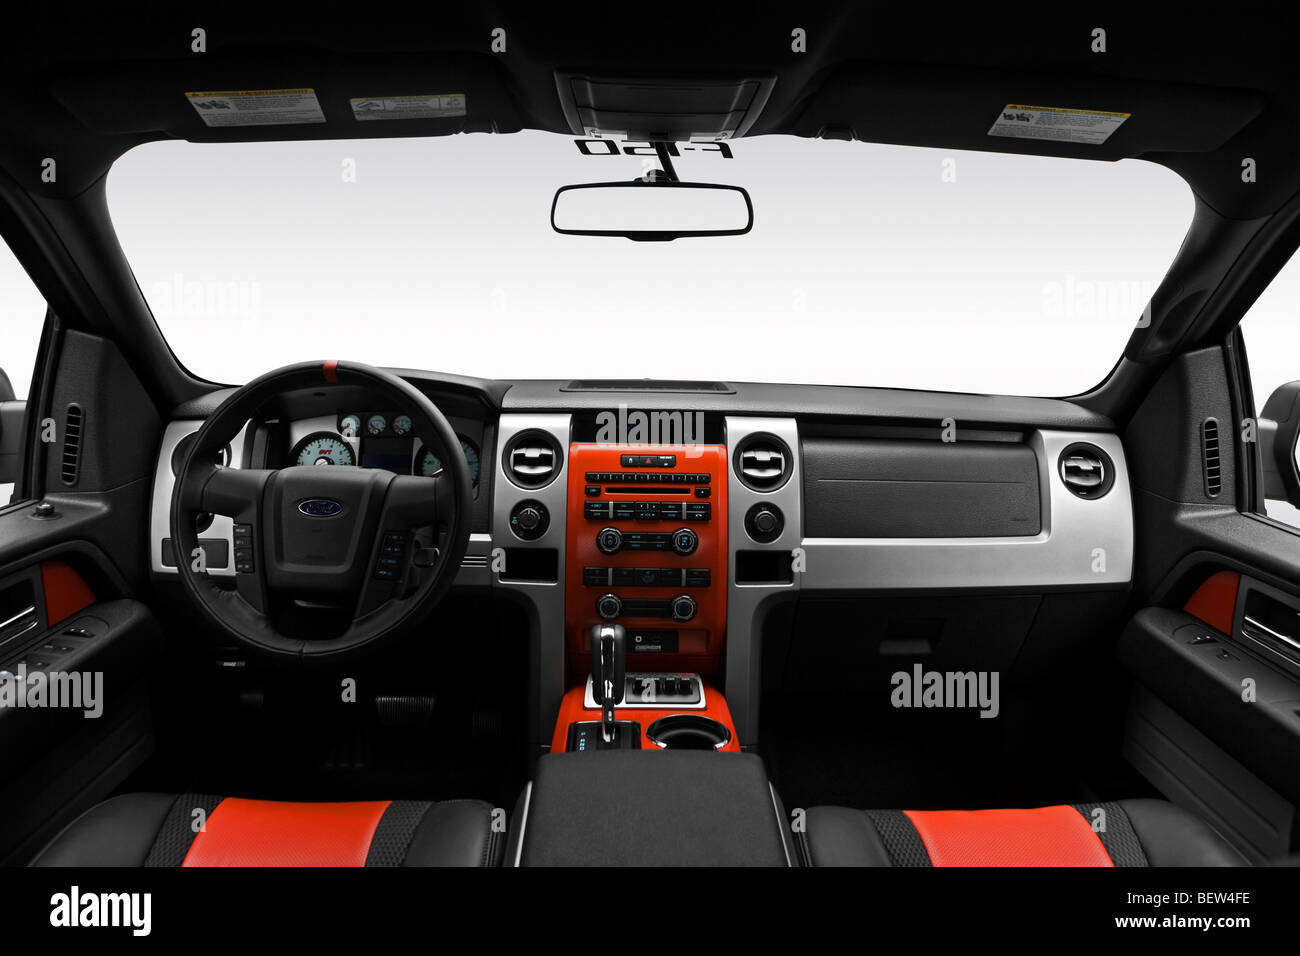 2010 Ford F-150 SVT Raptor in Black - Dashboard, center console, gear shifter view - Stock Image